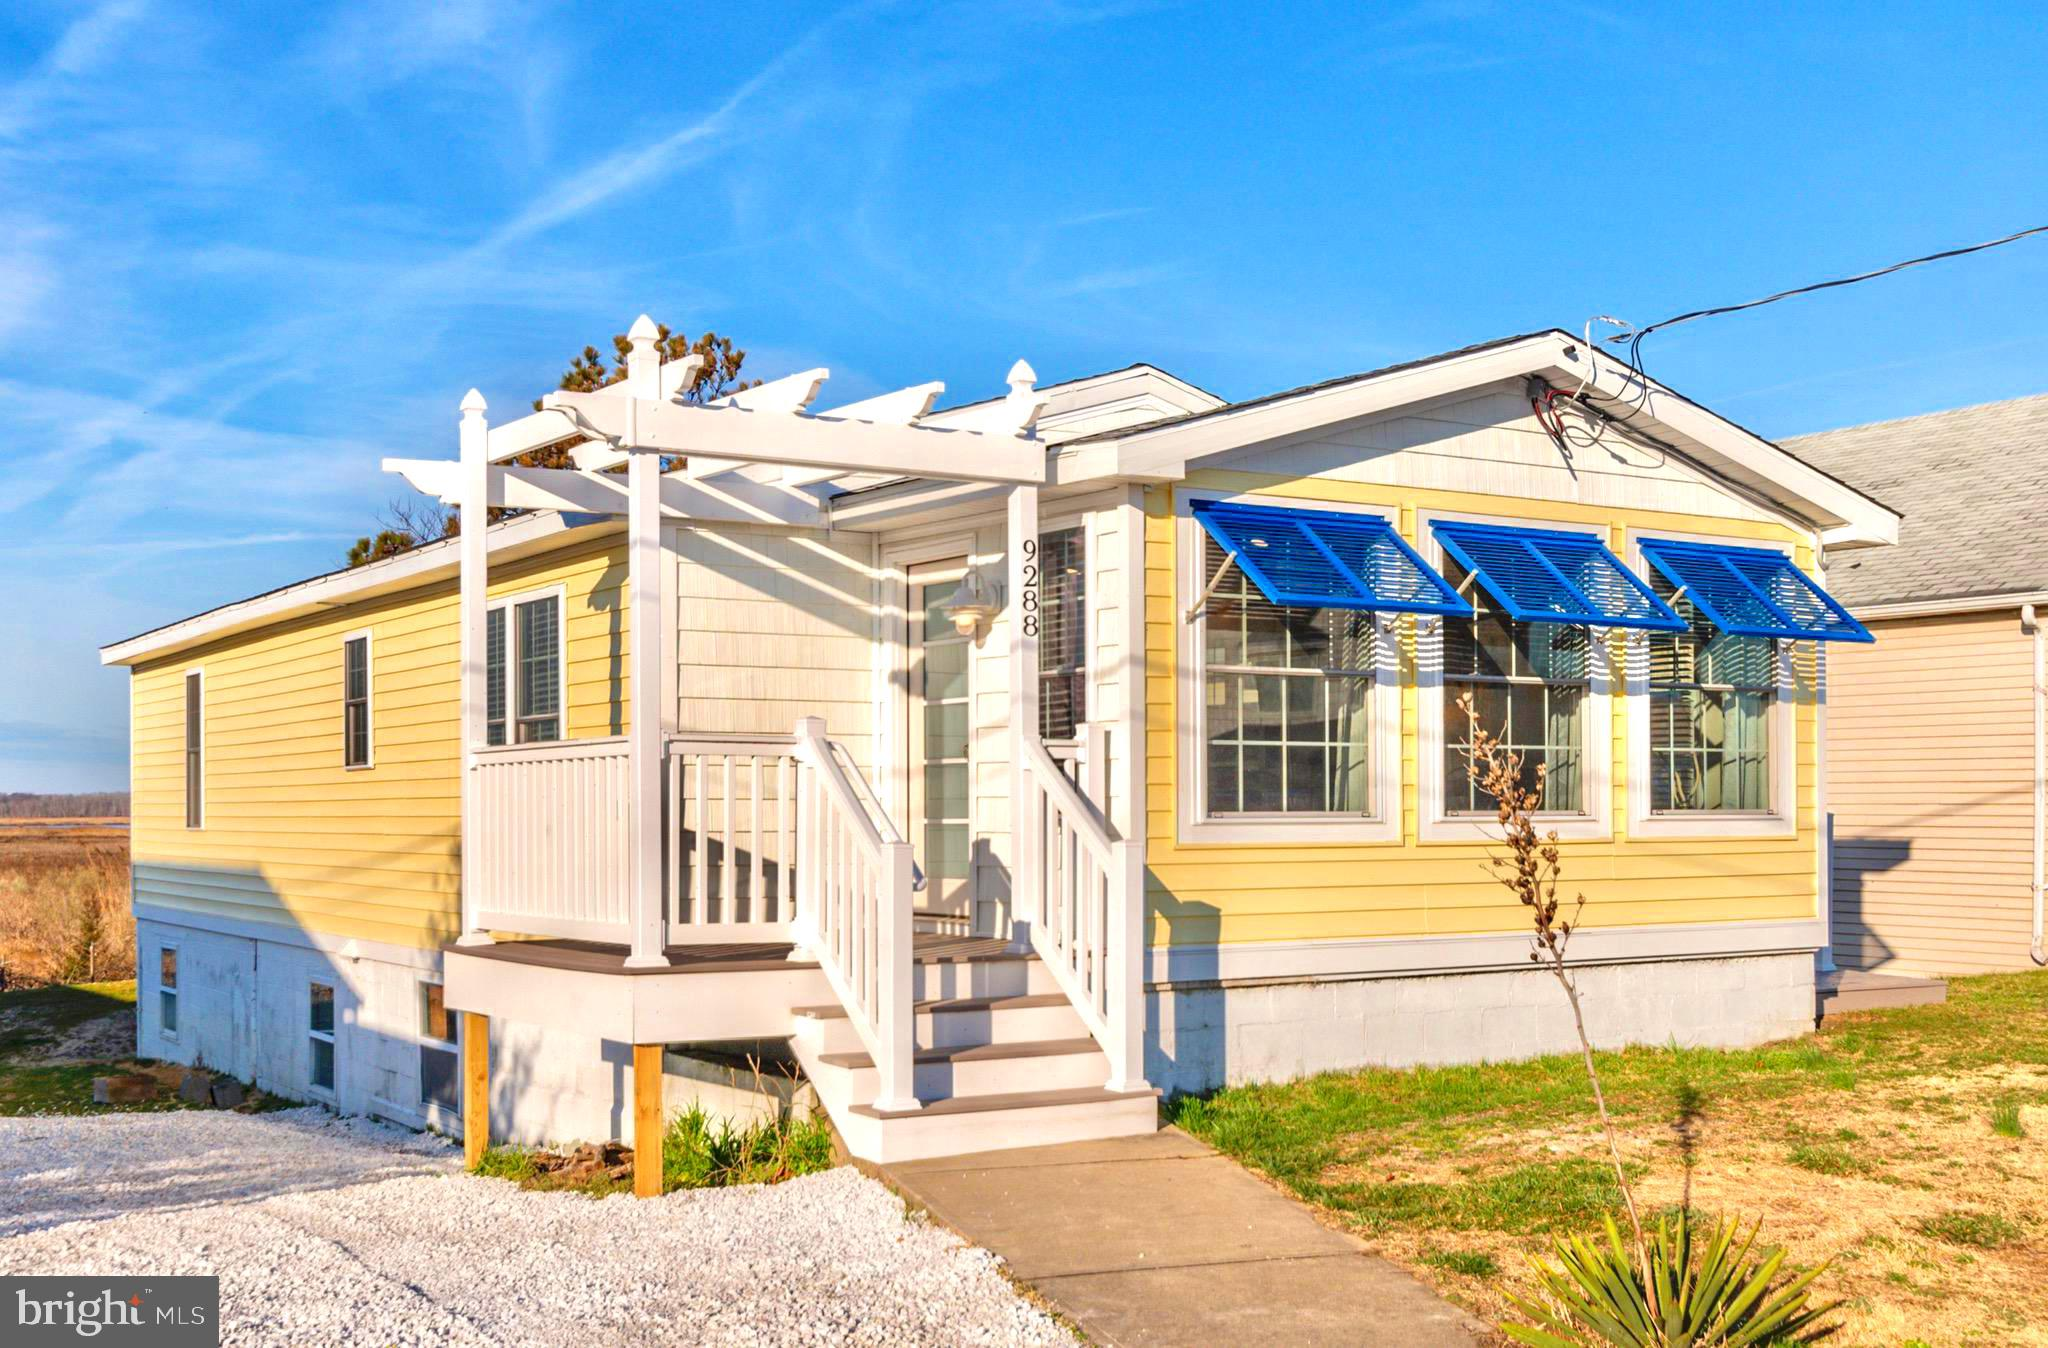 Absolutely turnkey home on Prime Hook Beach!  Newly renovated in 2019, this home should provide carefree living for many years.  The front of this beach cottage has bright blue awning shutters and pergola over entry that features a 5 panel frosted window door.  Then enter into a bright,  intelligently designed open floorplan -- offered furnished, the living, dining and kitchen area open to each other with bayviews which make this retreat even more pleasurable.  New ducted split high efficiency HVAC, new stainless appliances, and beautiful barn doors provide entry into the laundry area. Clean lines with comfortable, contemporary furniture to make summer enjoyment easy.  Tasteful thought in every detail -- glass shower doors, double vanity master sink, quartz countertops in kitchen along with tiled backsplash,  recessed lighting and crisp blue glass lights over clever antique style island.  Azak front and side decks for carefree outdoor enjoyment.  Plenty of storage under the home in an unfinished lower level area.  New septic.  Beach access just a few houses to the north.  All you need for your turnkey beach retreat.